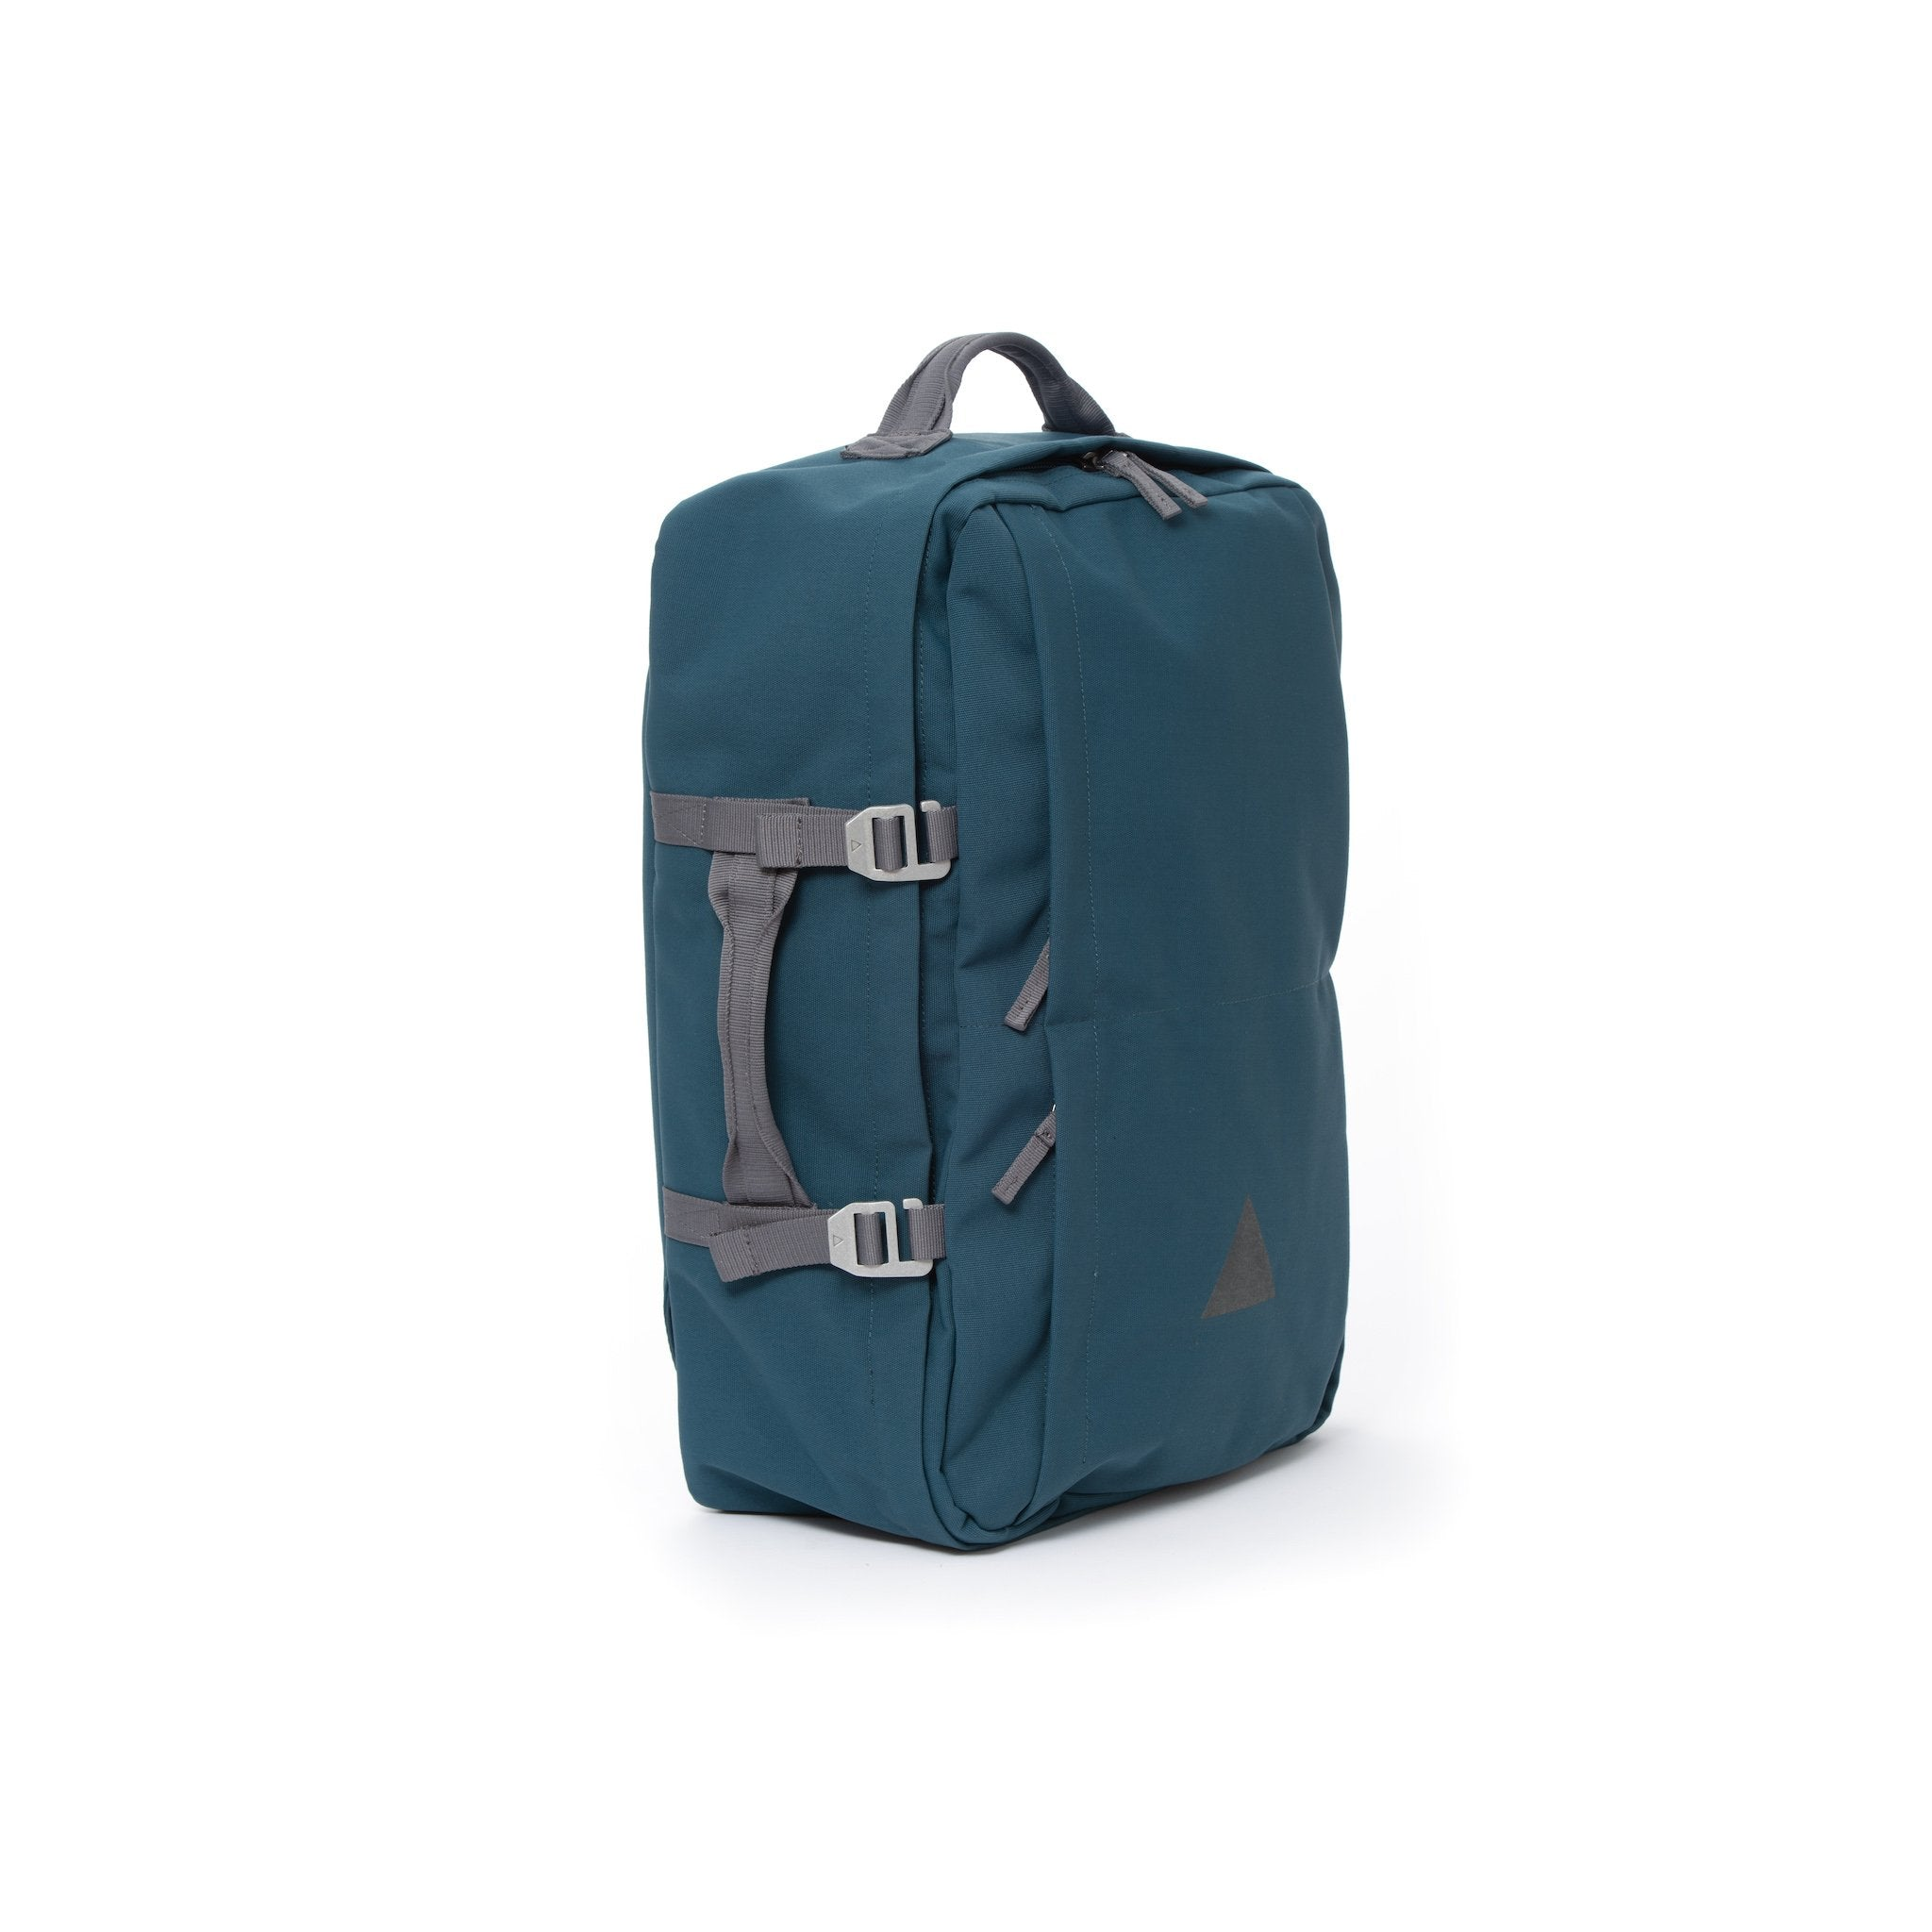 Blue recycled canvas travel backpack with carry handle.